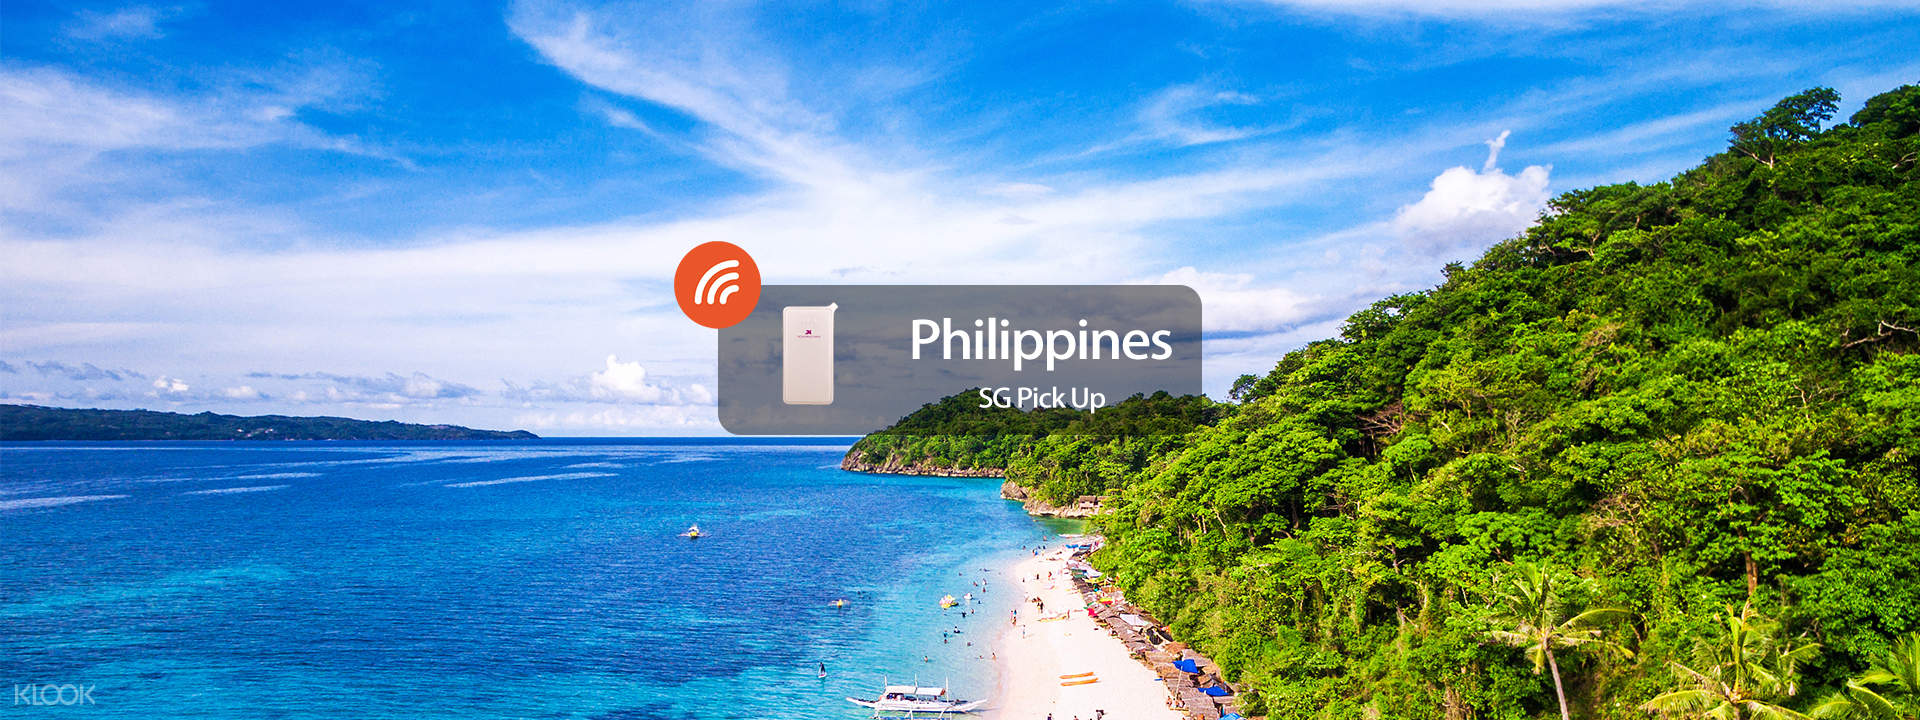 4G WiFi (SG Pick Up) for the Philippines - Klook